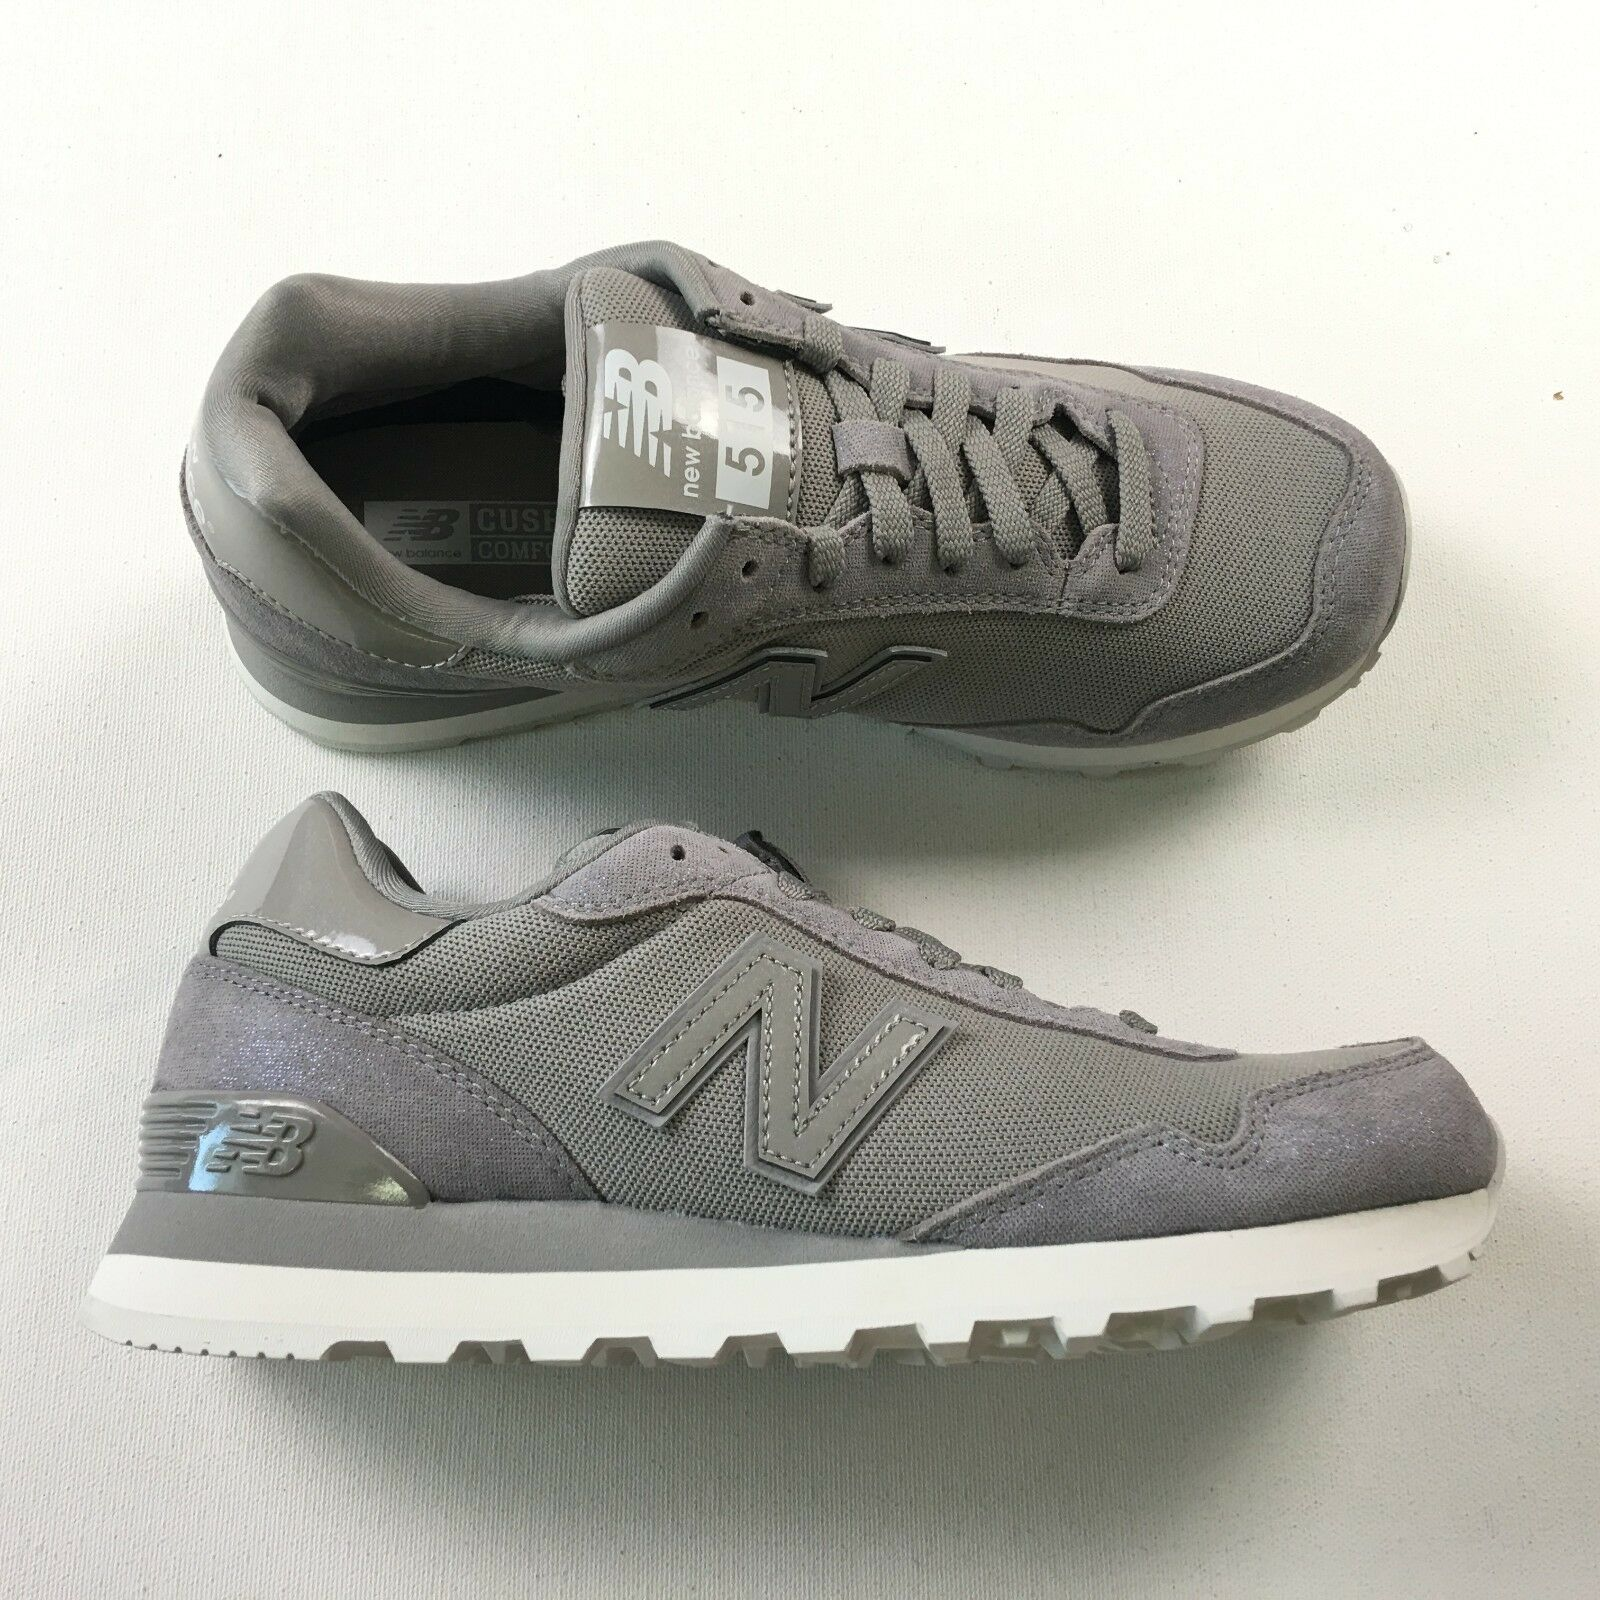 New Balance Damenschuhe Sz Sneakers 7 Schuhes WL515RFB 515 Gray Sneakers Sz S0077 fb98ab